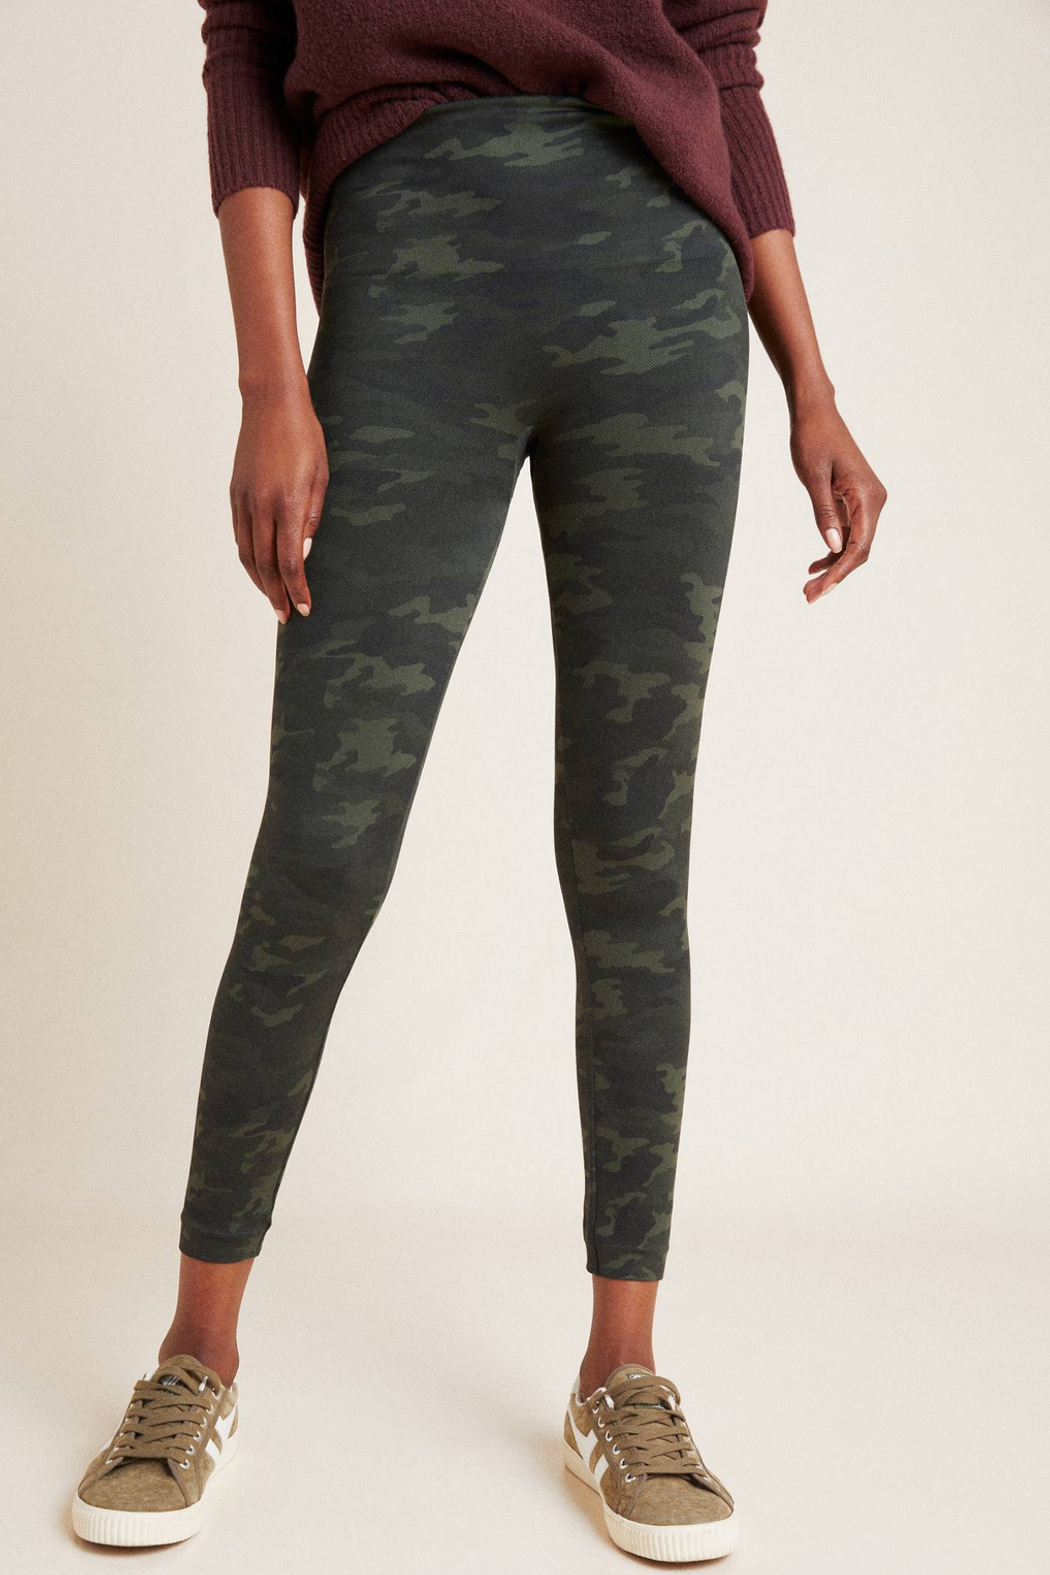 Spanx Look At Me Now Seamless Camo Leggings - Front Full Image